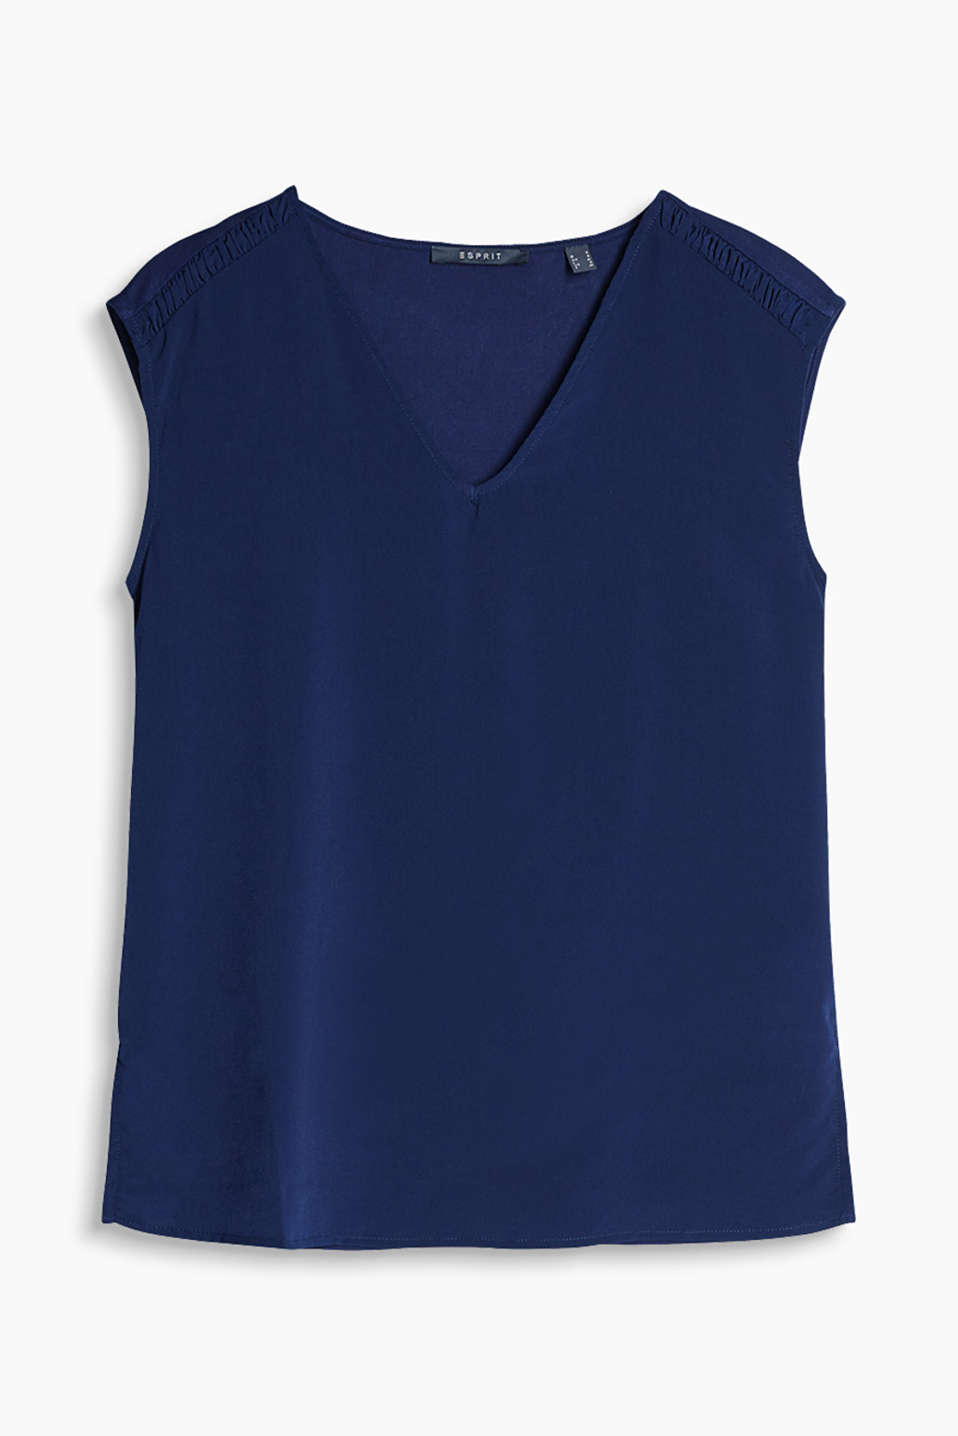 Blouse top made of airy blended material with a V-neckline, high-low hem and crinkled shoulder yoke